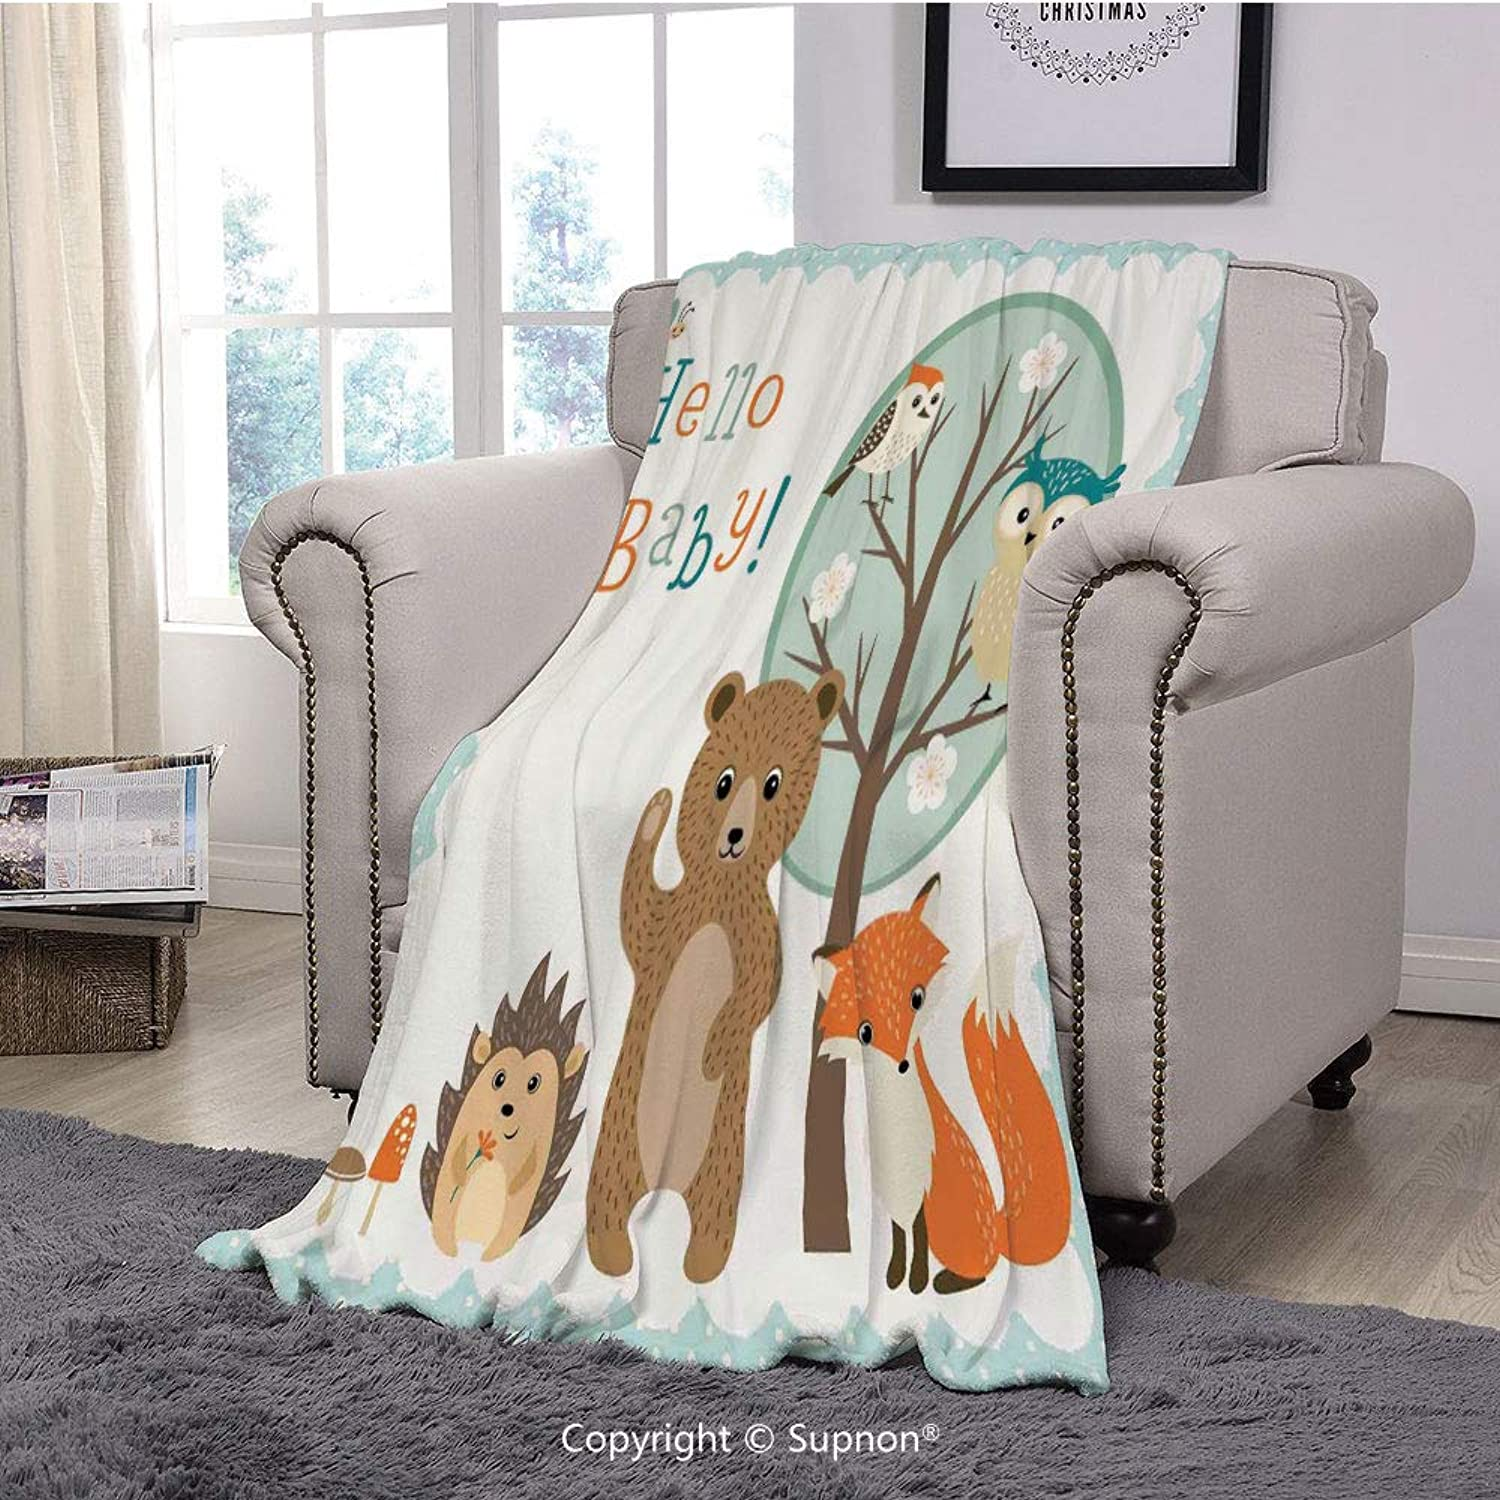 Throw Blanket Super Soft Fuzzy Light Blanket,Kids,Hello Baby Arrival Funny Hedgehog Bee Owls Birds on Tree Bear Fox Animals Themed Party Home Decor(51  x 51 )